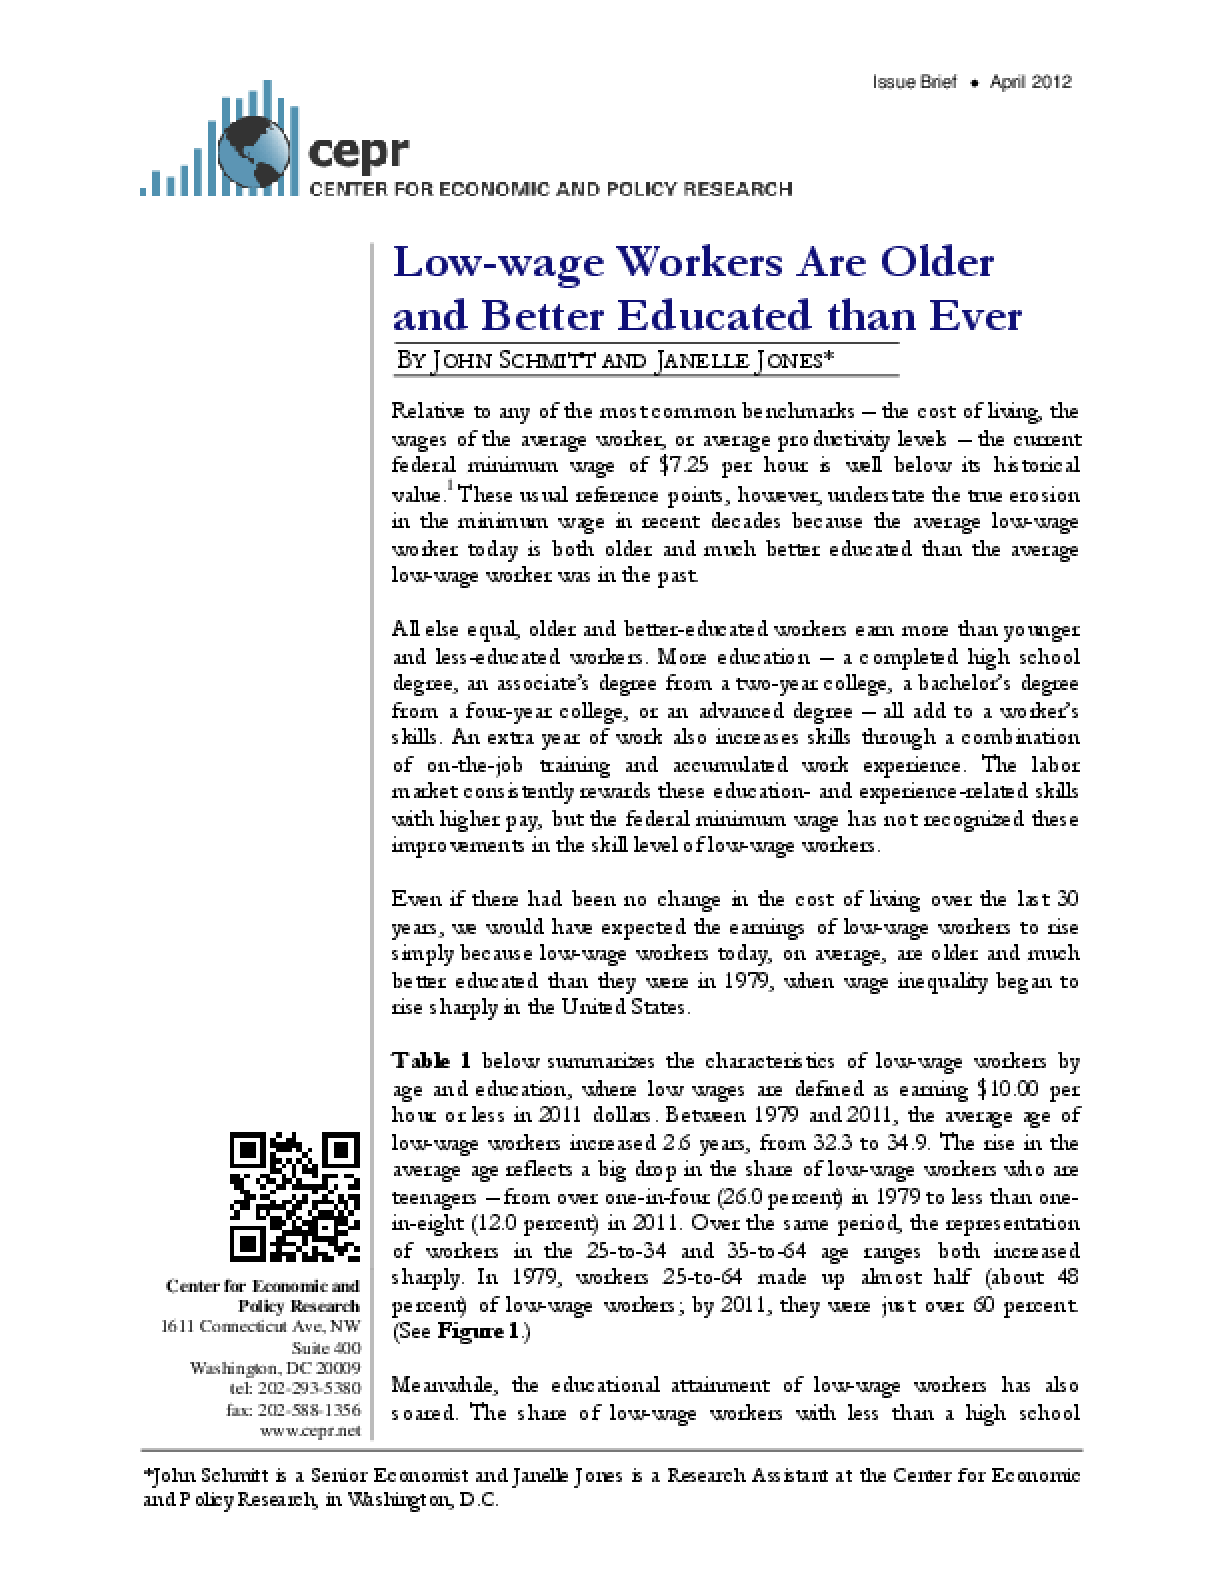 Low-wage Workers Are Older and Better Educated than Ever